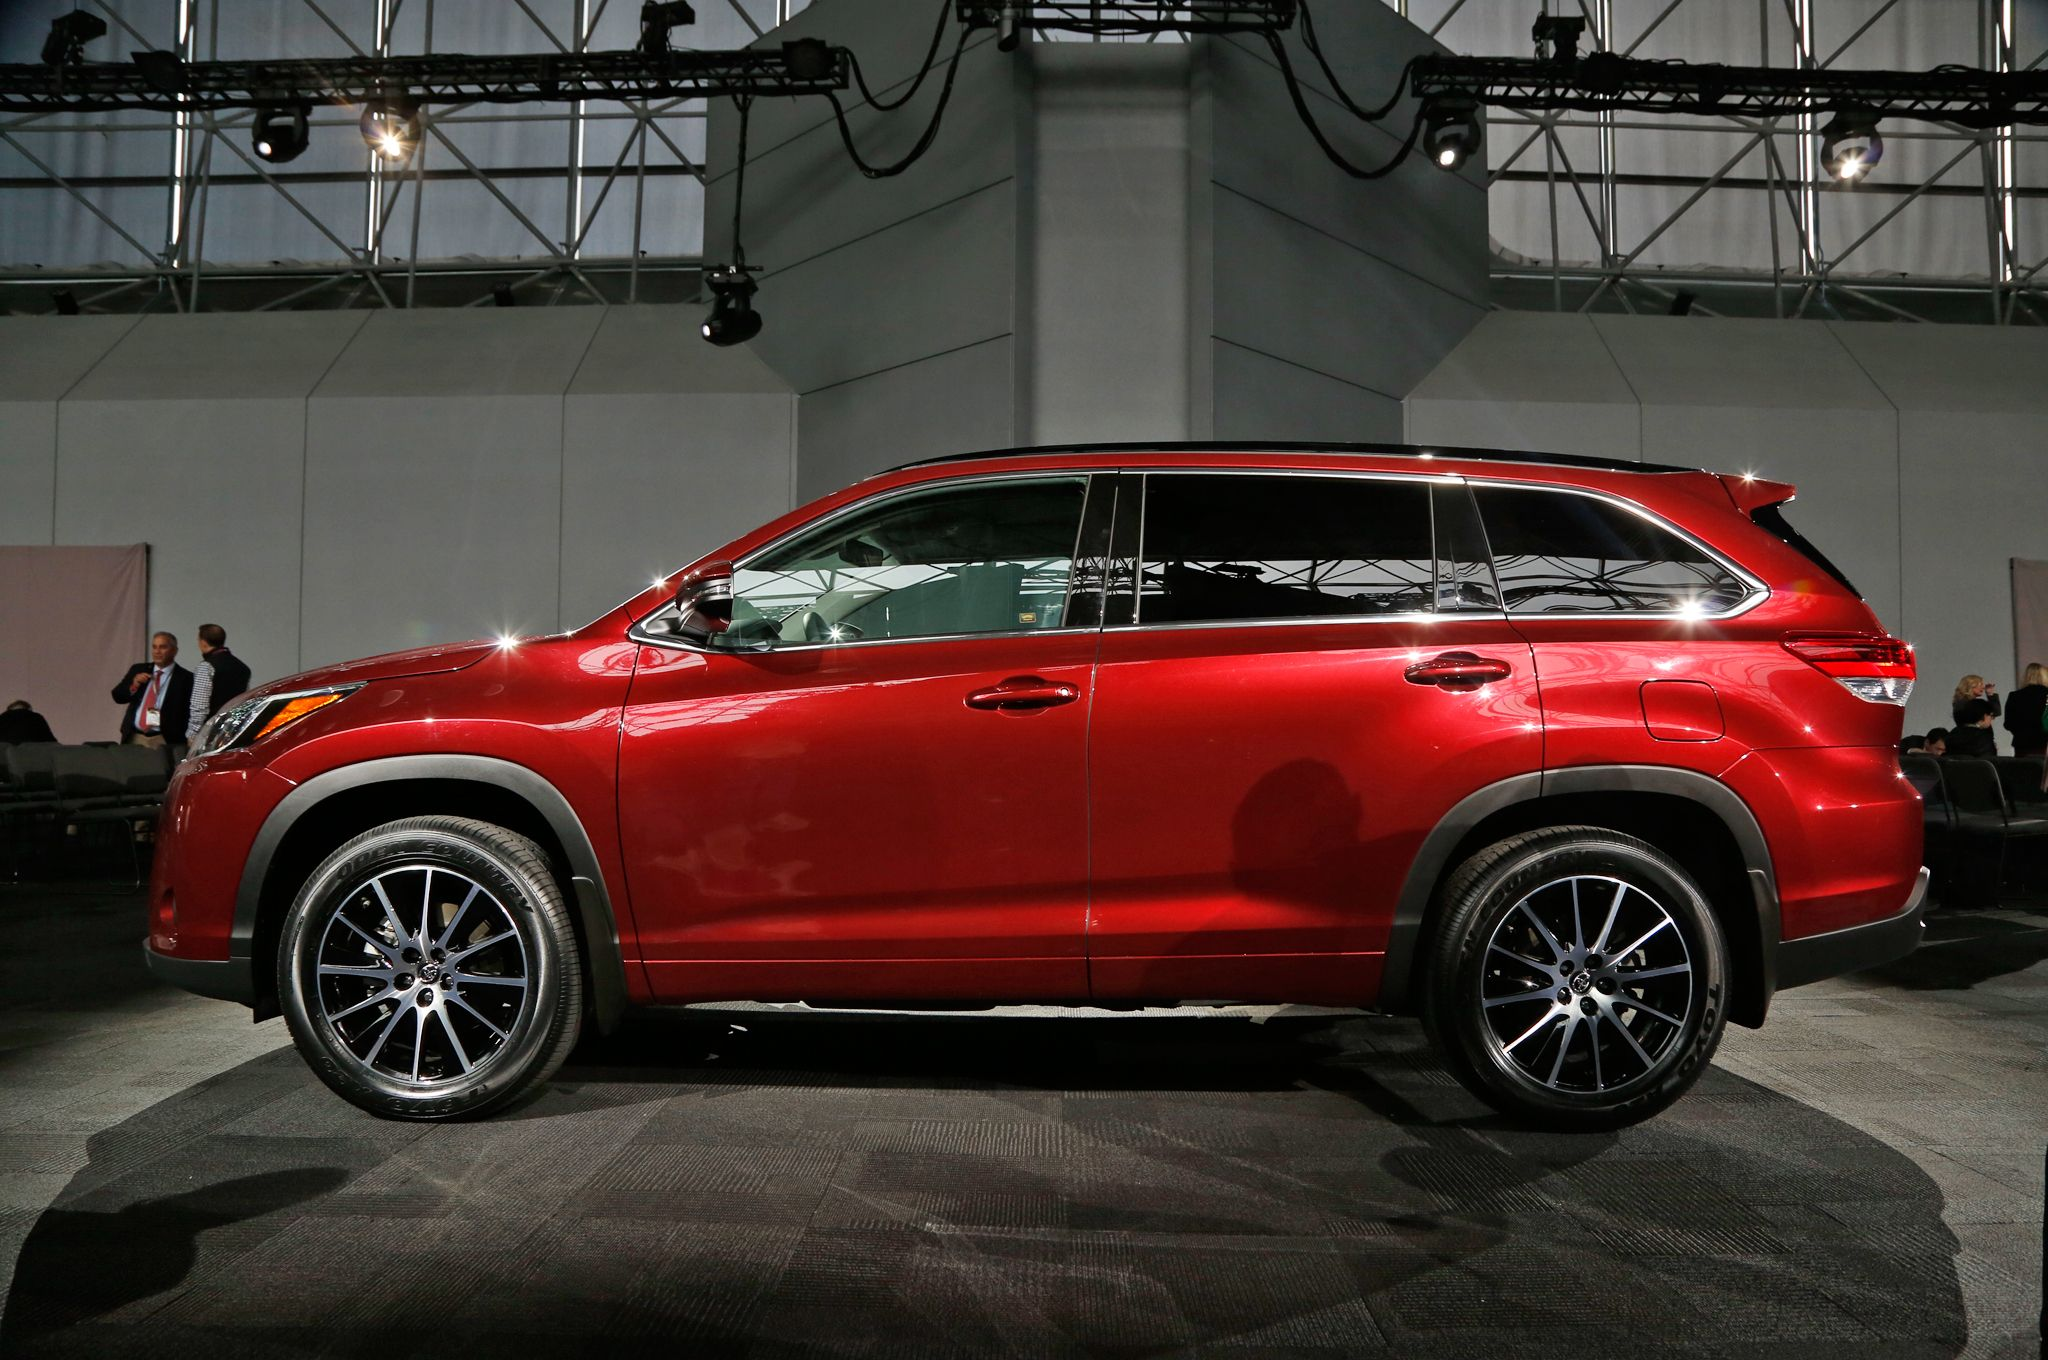 Affordable Suv 2017 Toyota Highlander Spec Price Awesome Indoor Outdoor